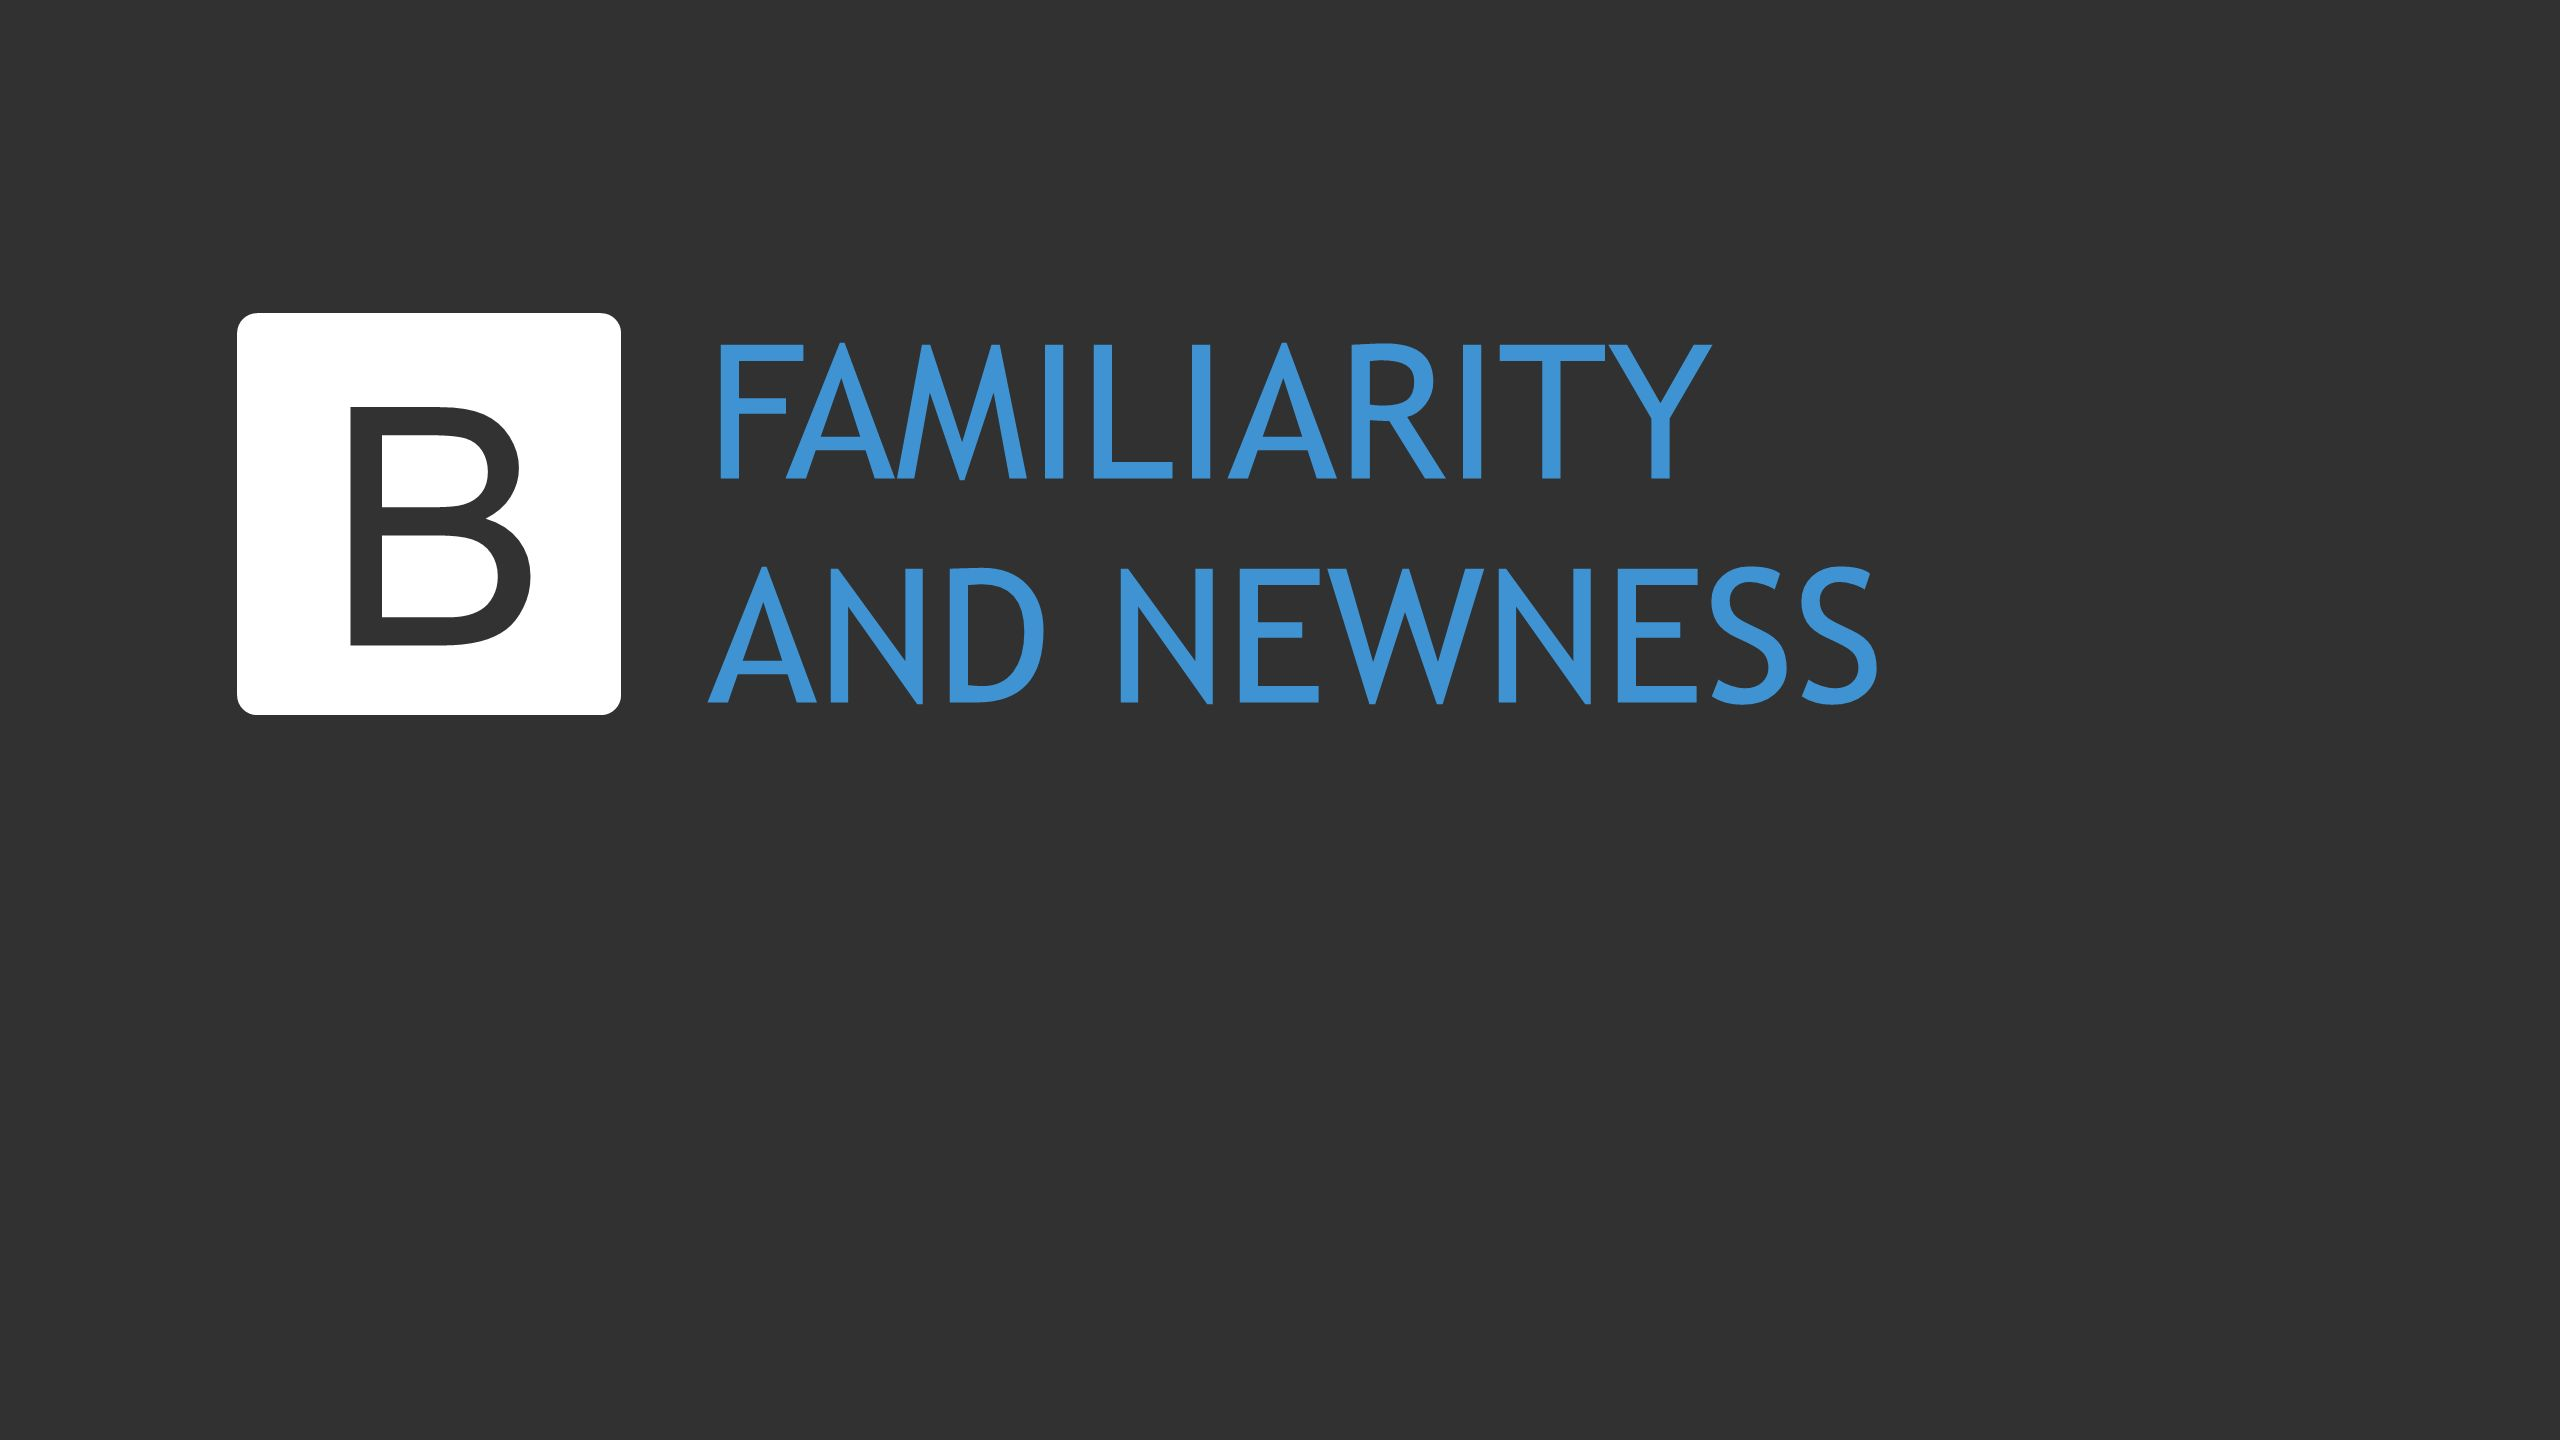 FAMILIARITY AND NEWNESS B